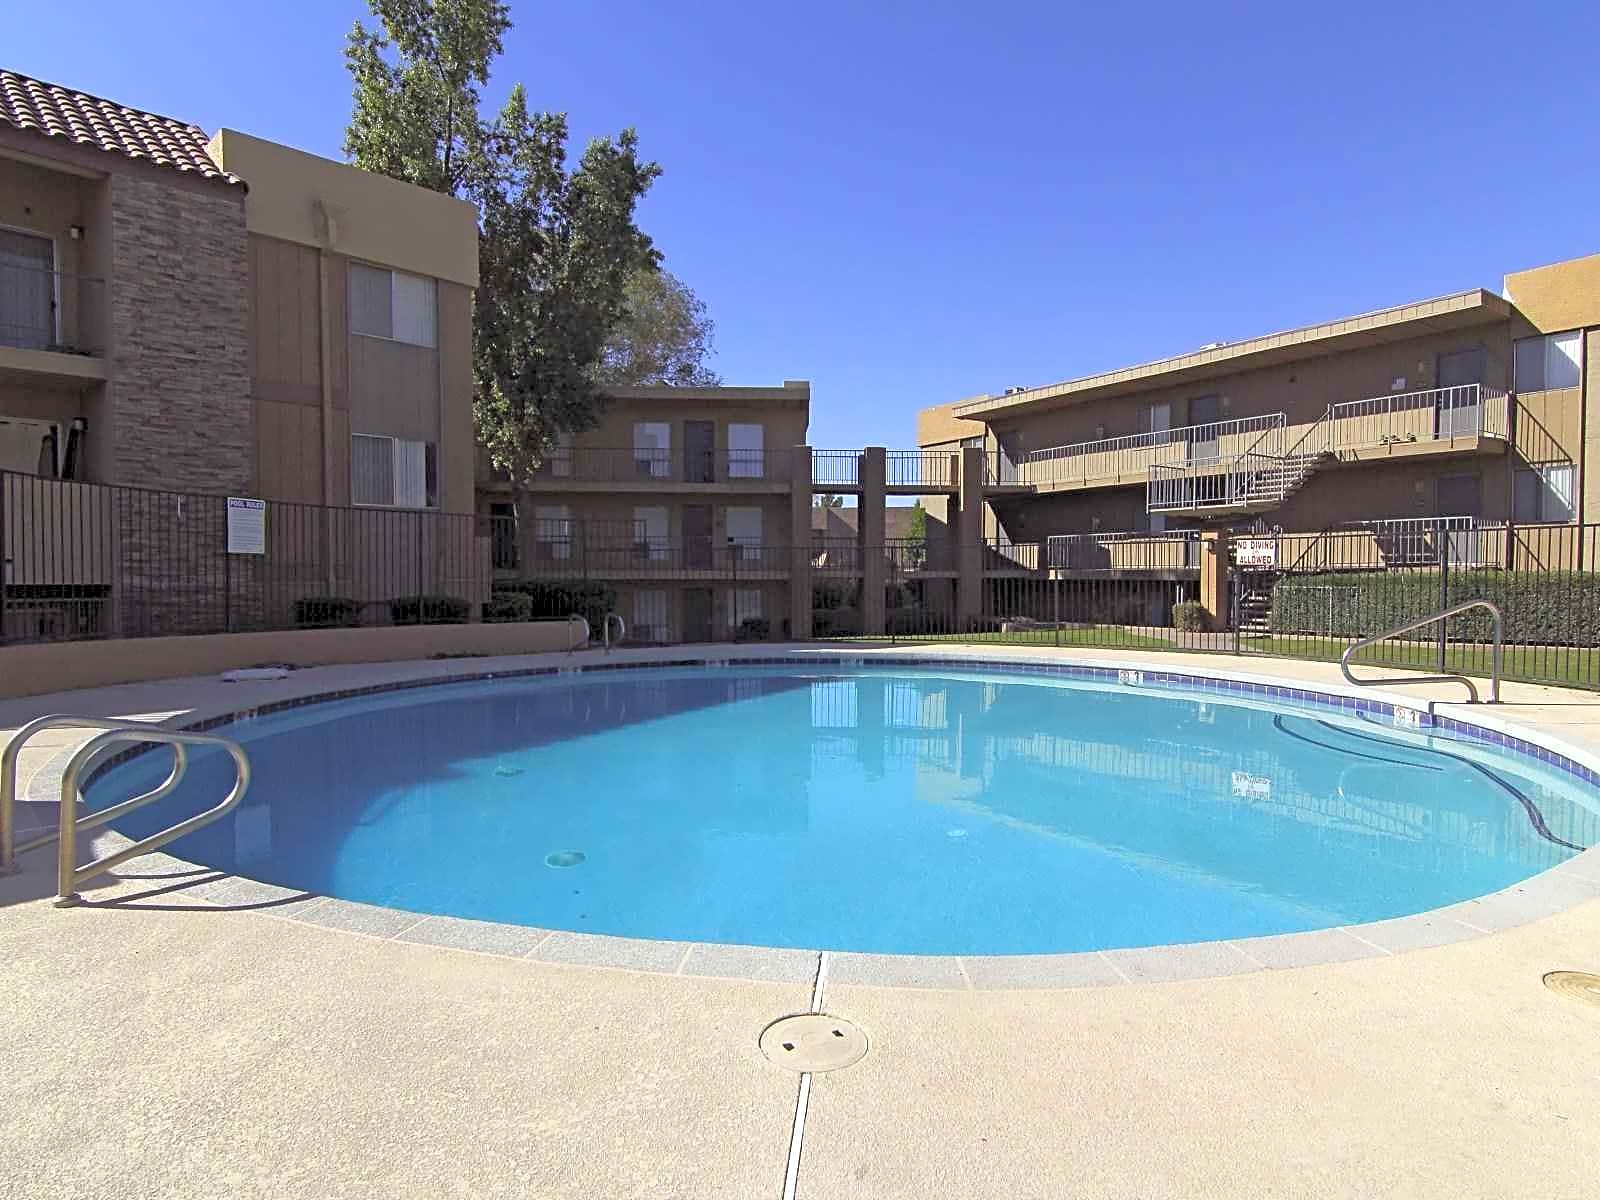 Photo: Phoenix Apartment for Rent - $419.00 / month; 1 Bd & 1 Ba